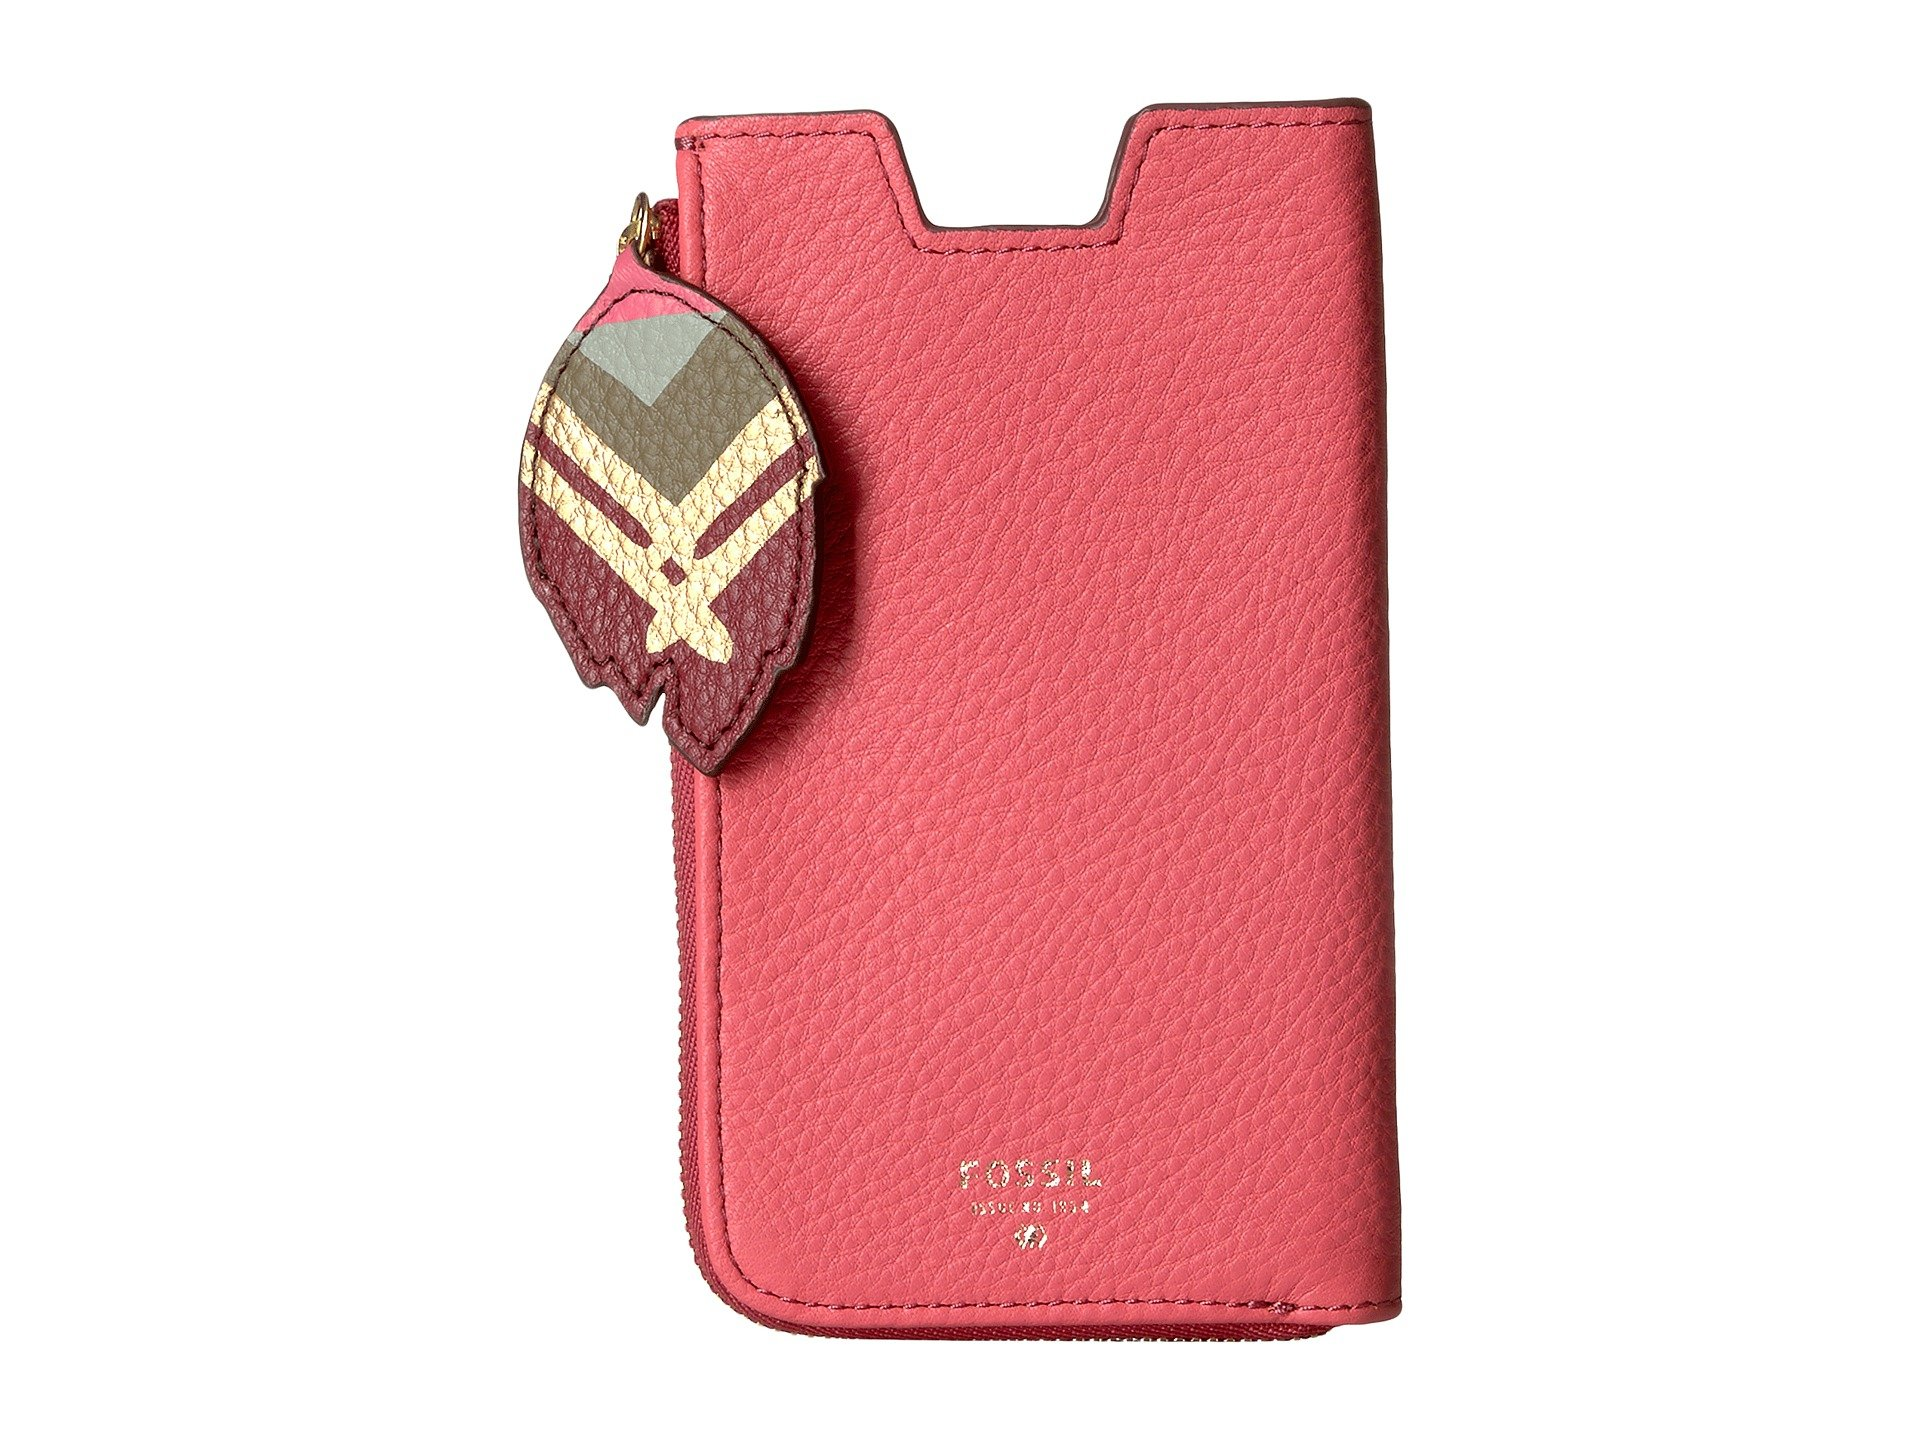 Phone Sleeve Wallet, Rose